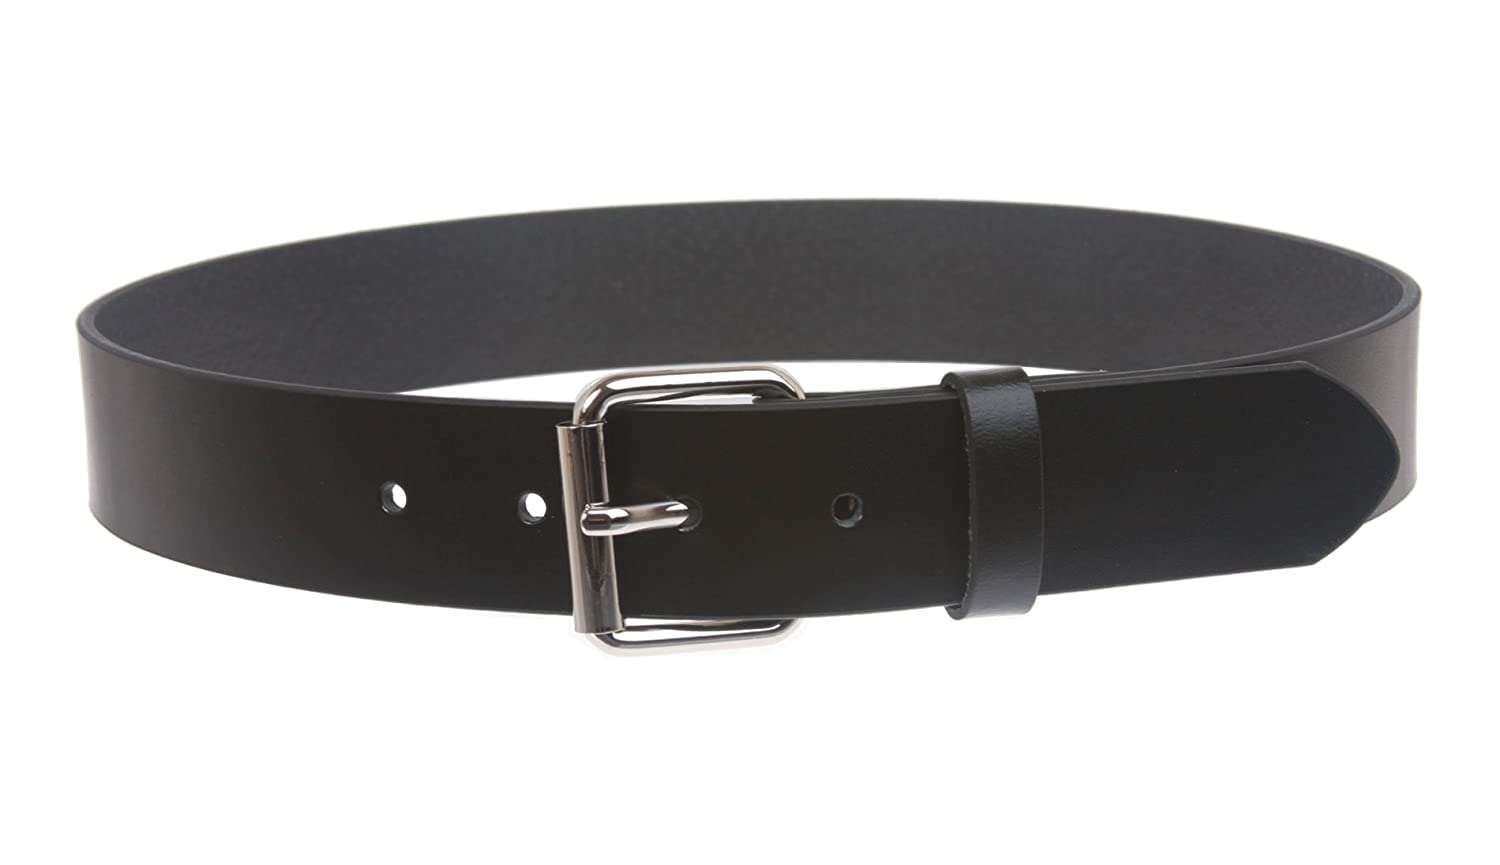 28 Inch Black Kids or Extra Small Size Snap On Plain Leather Belt